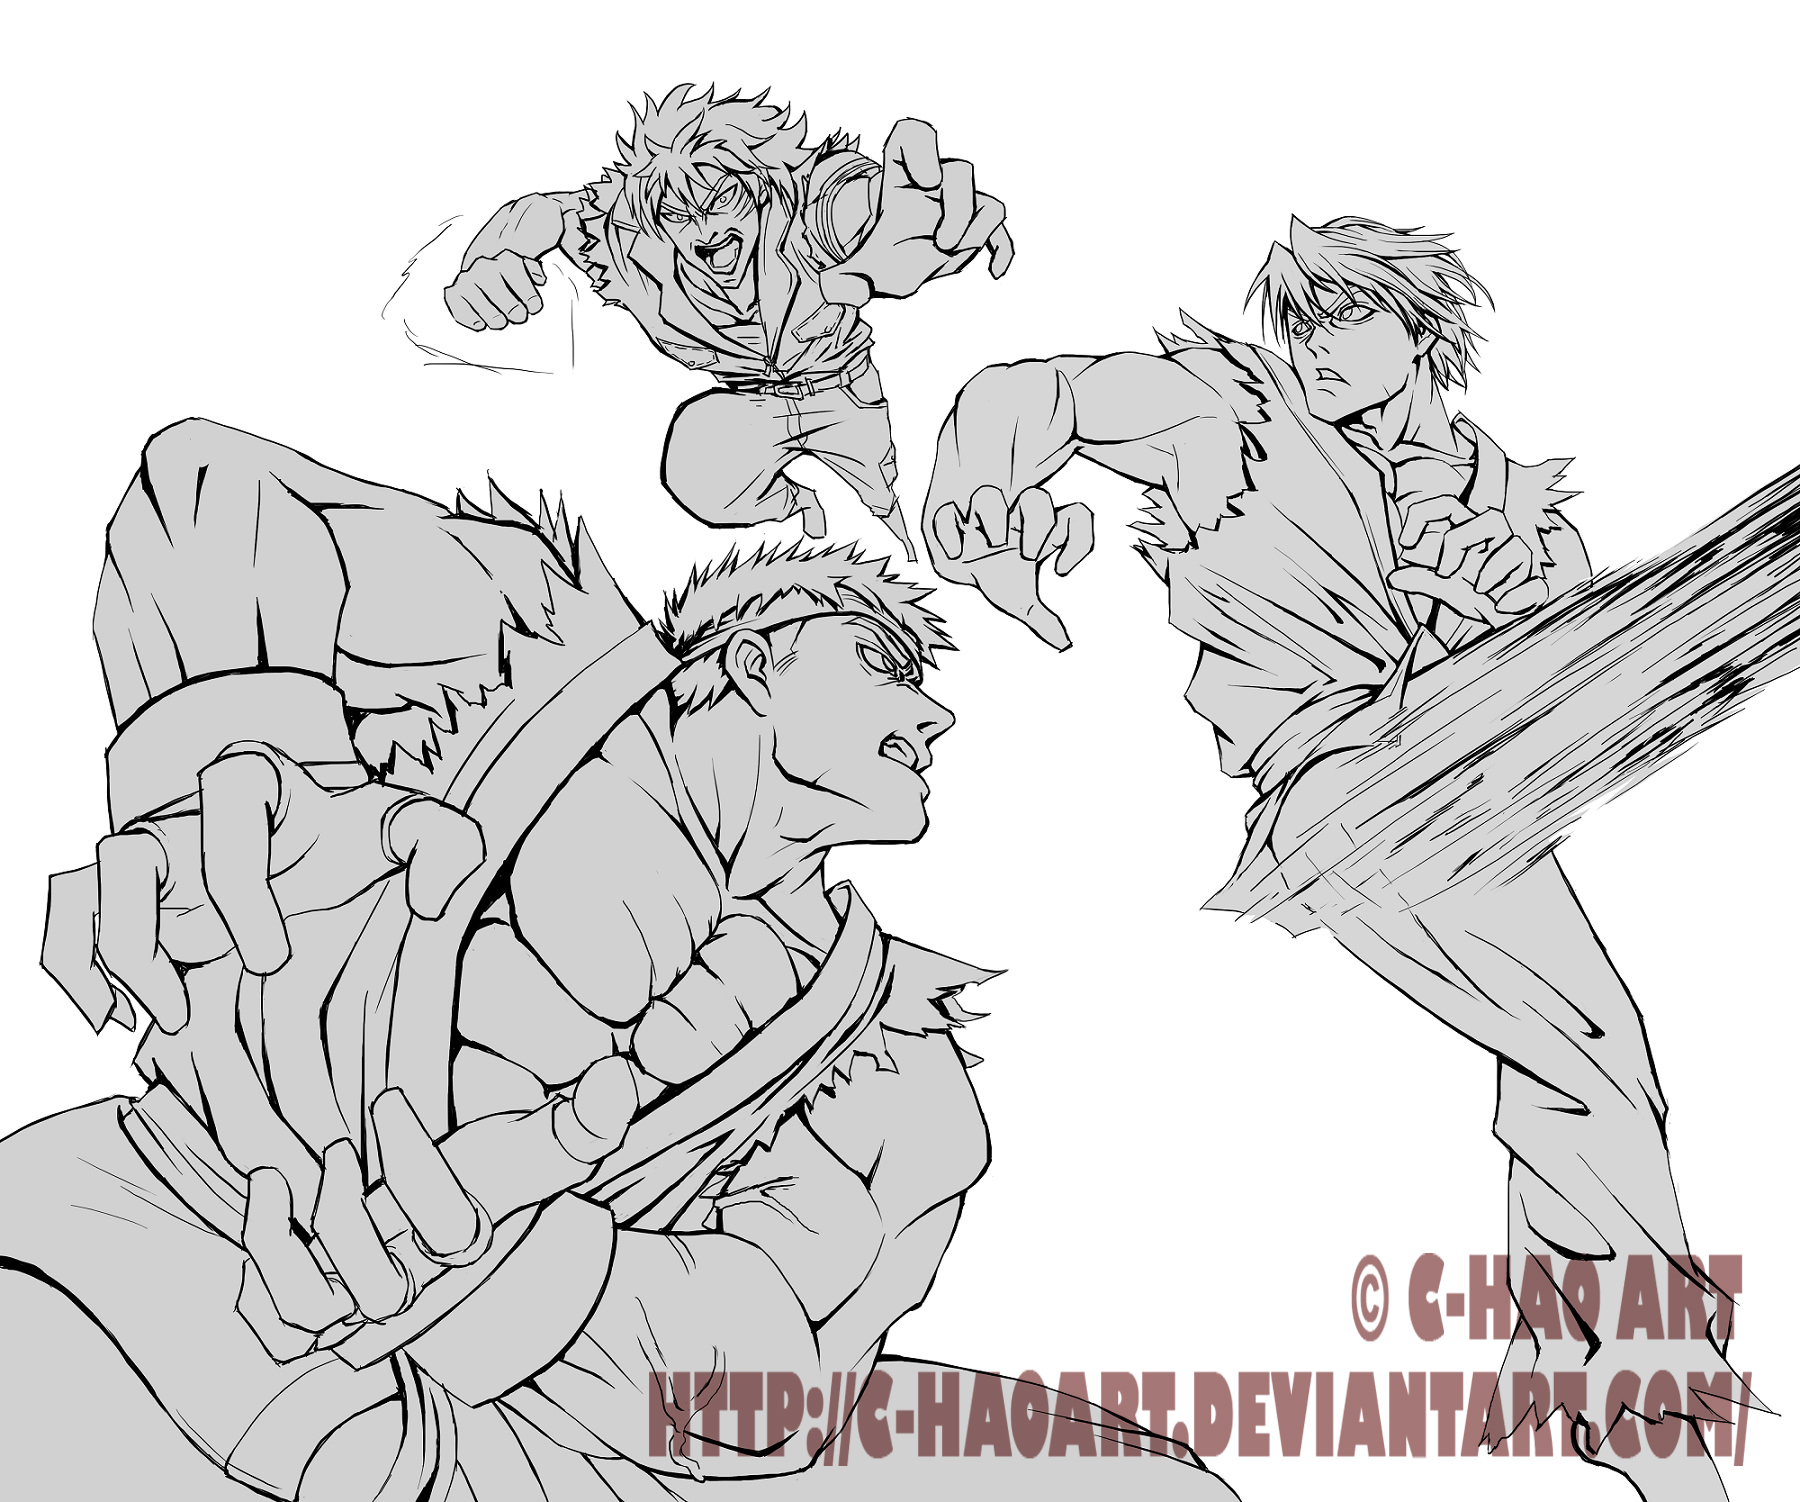 Street Fighter X Toriko (Lineart) By Mystery79 On DeviantArt